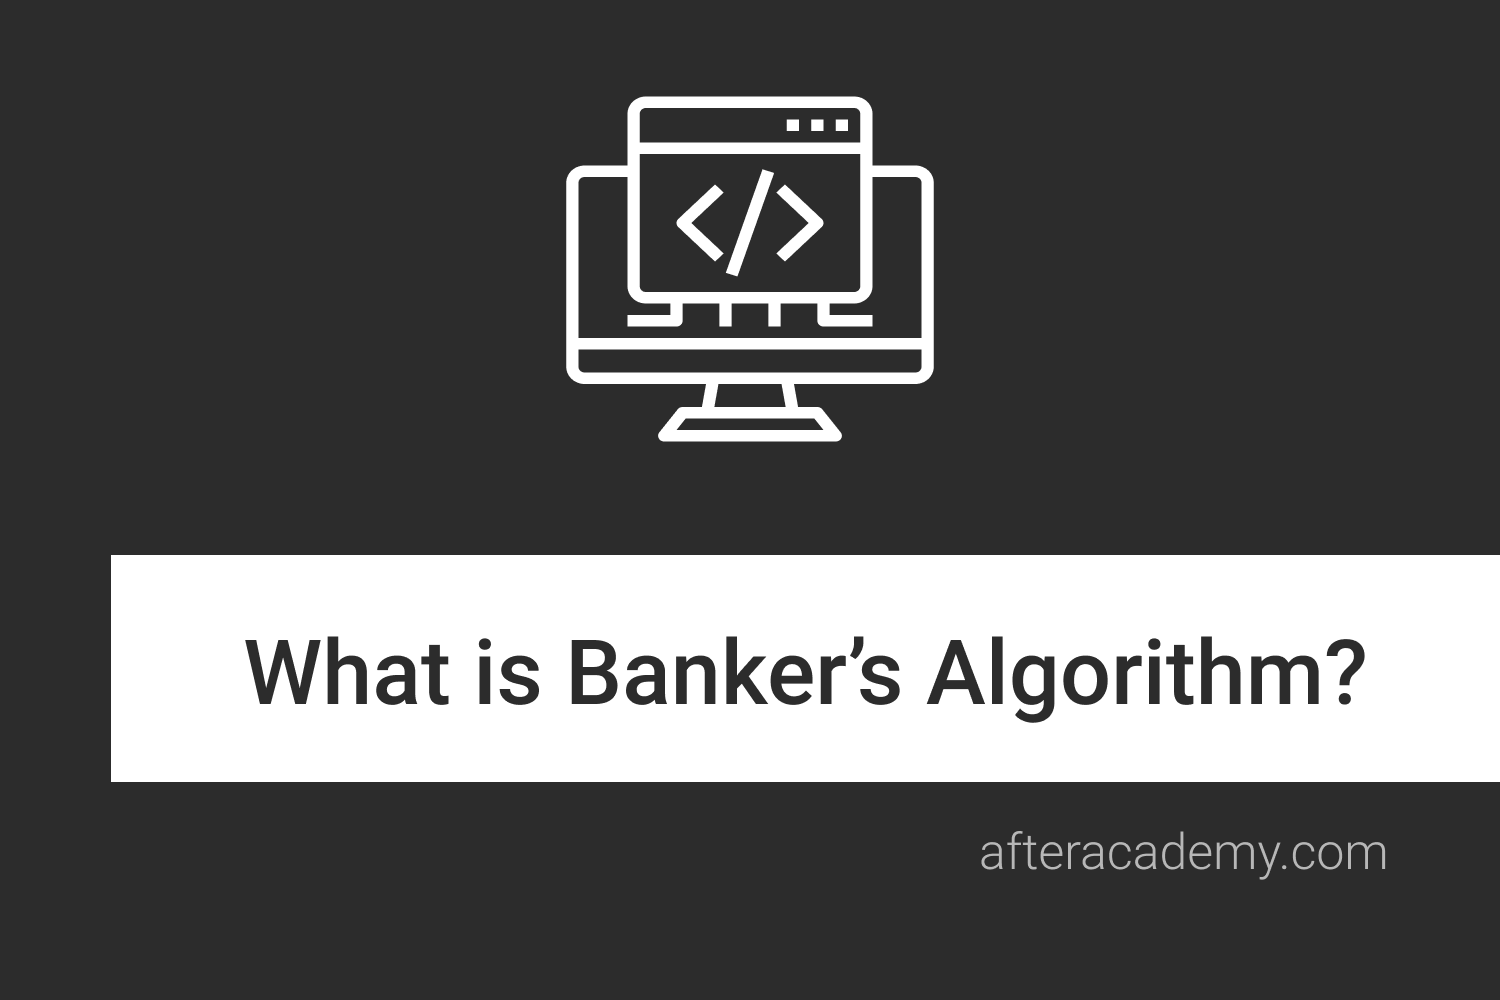 What is Banker's algorithm?